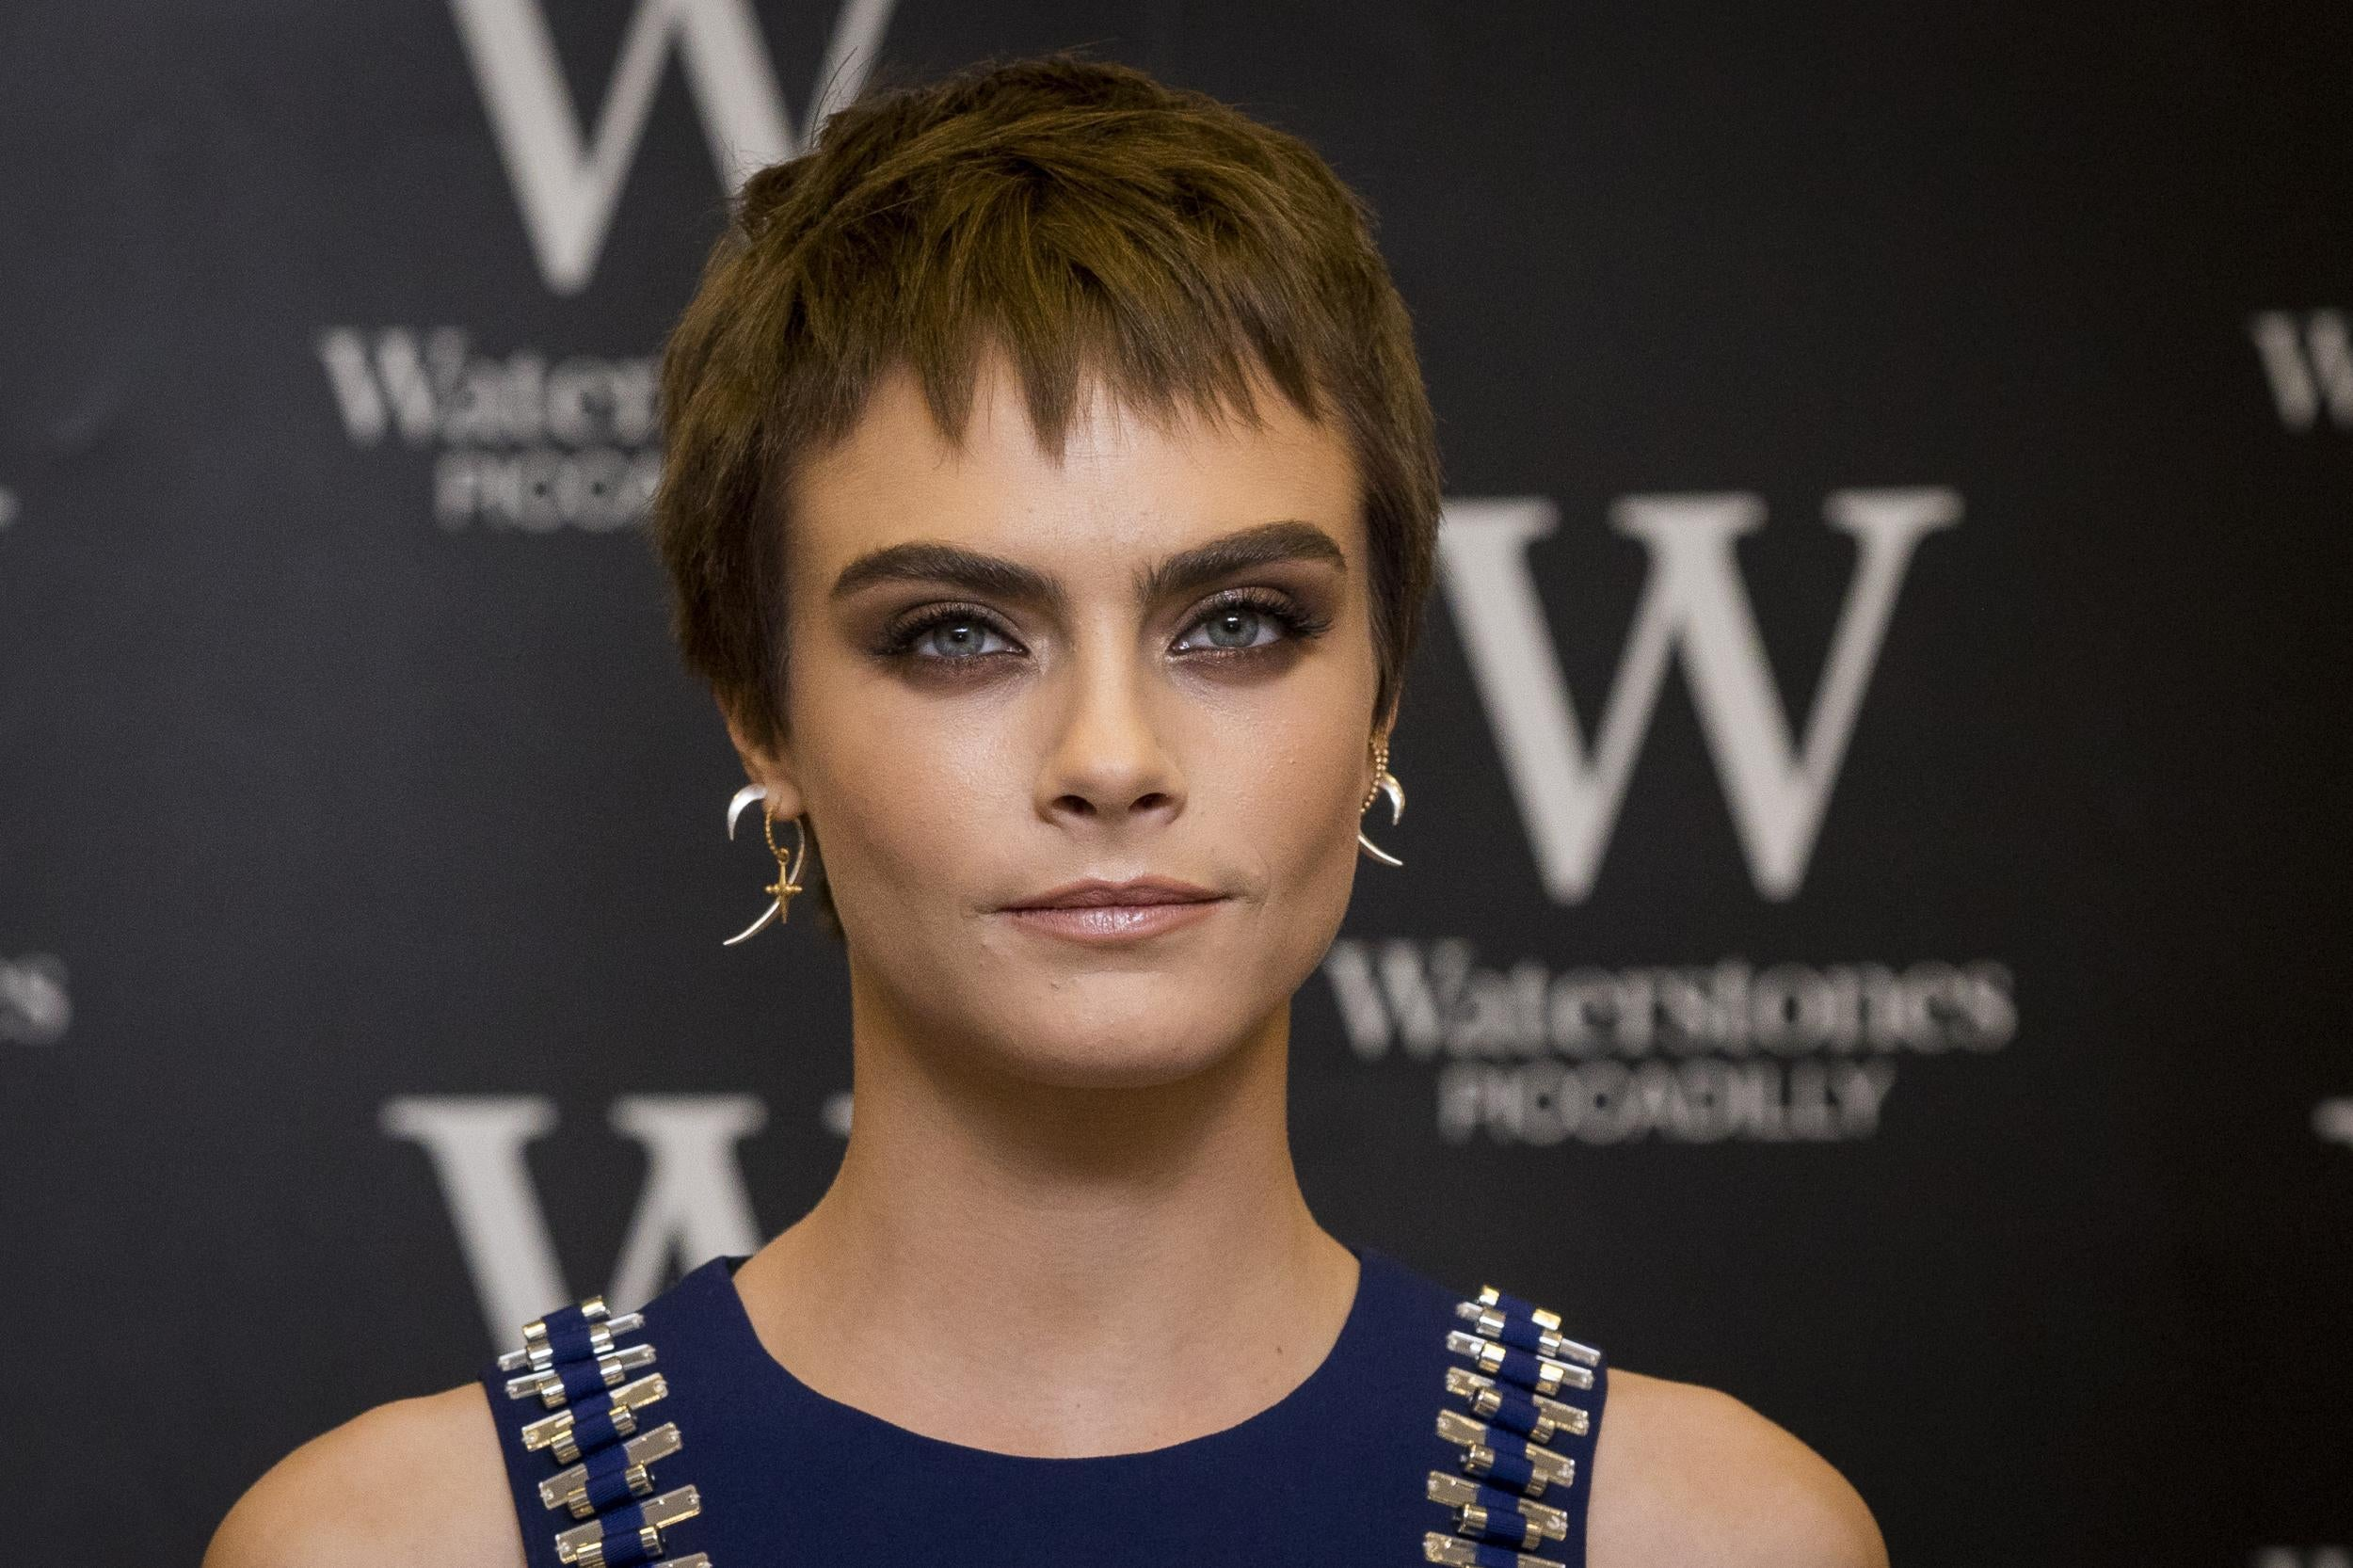 Forum on this topic: 27 Reasons Why Cara Delevingne is the , 27-reasons-why-cara-delevingne-is-the/